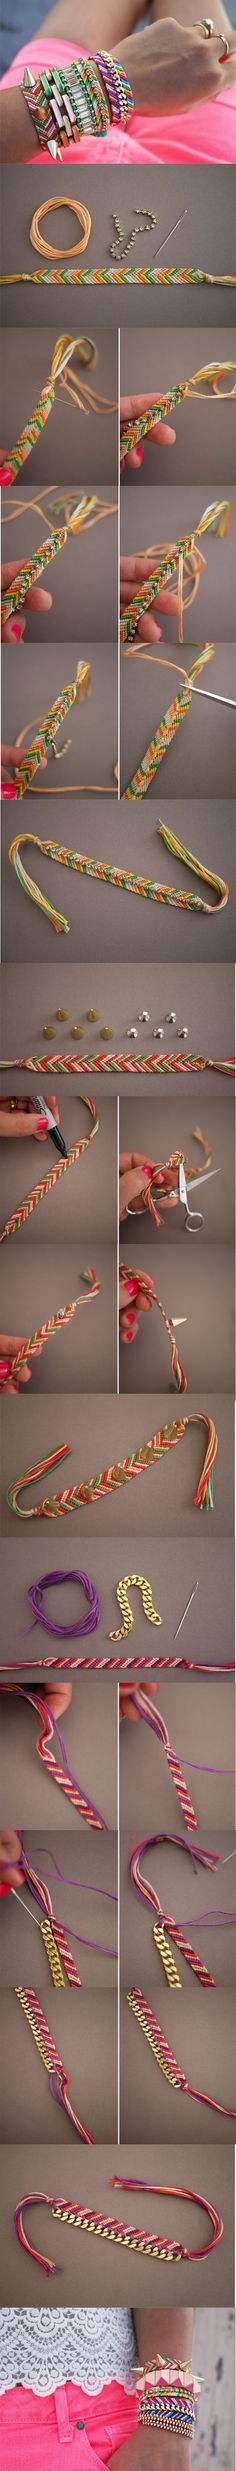 DIY: 5 Bracelets That Will Be Fashionable This Spring... I like the ideas of how to spice these oldies up